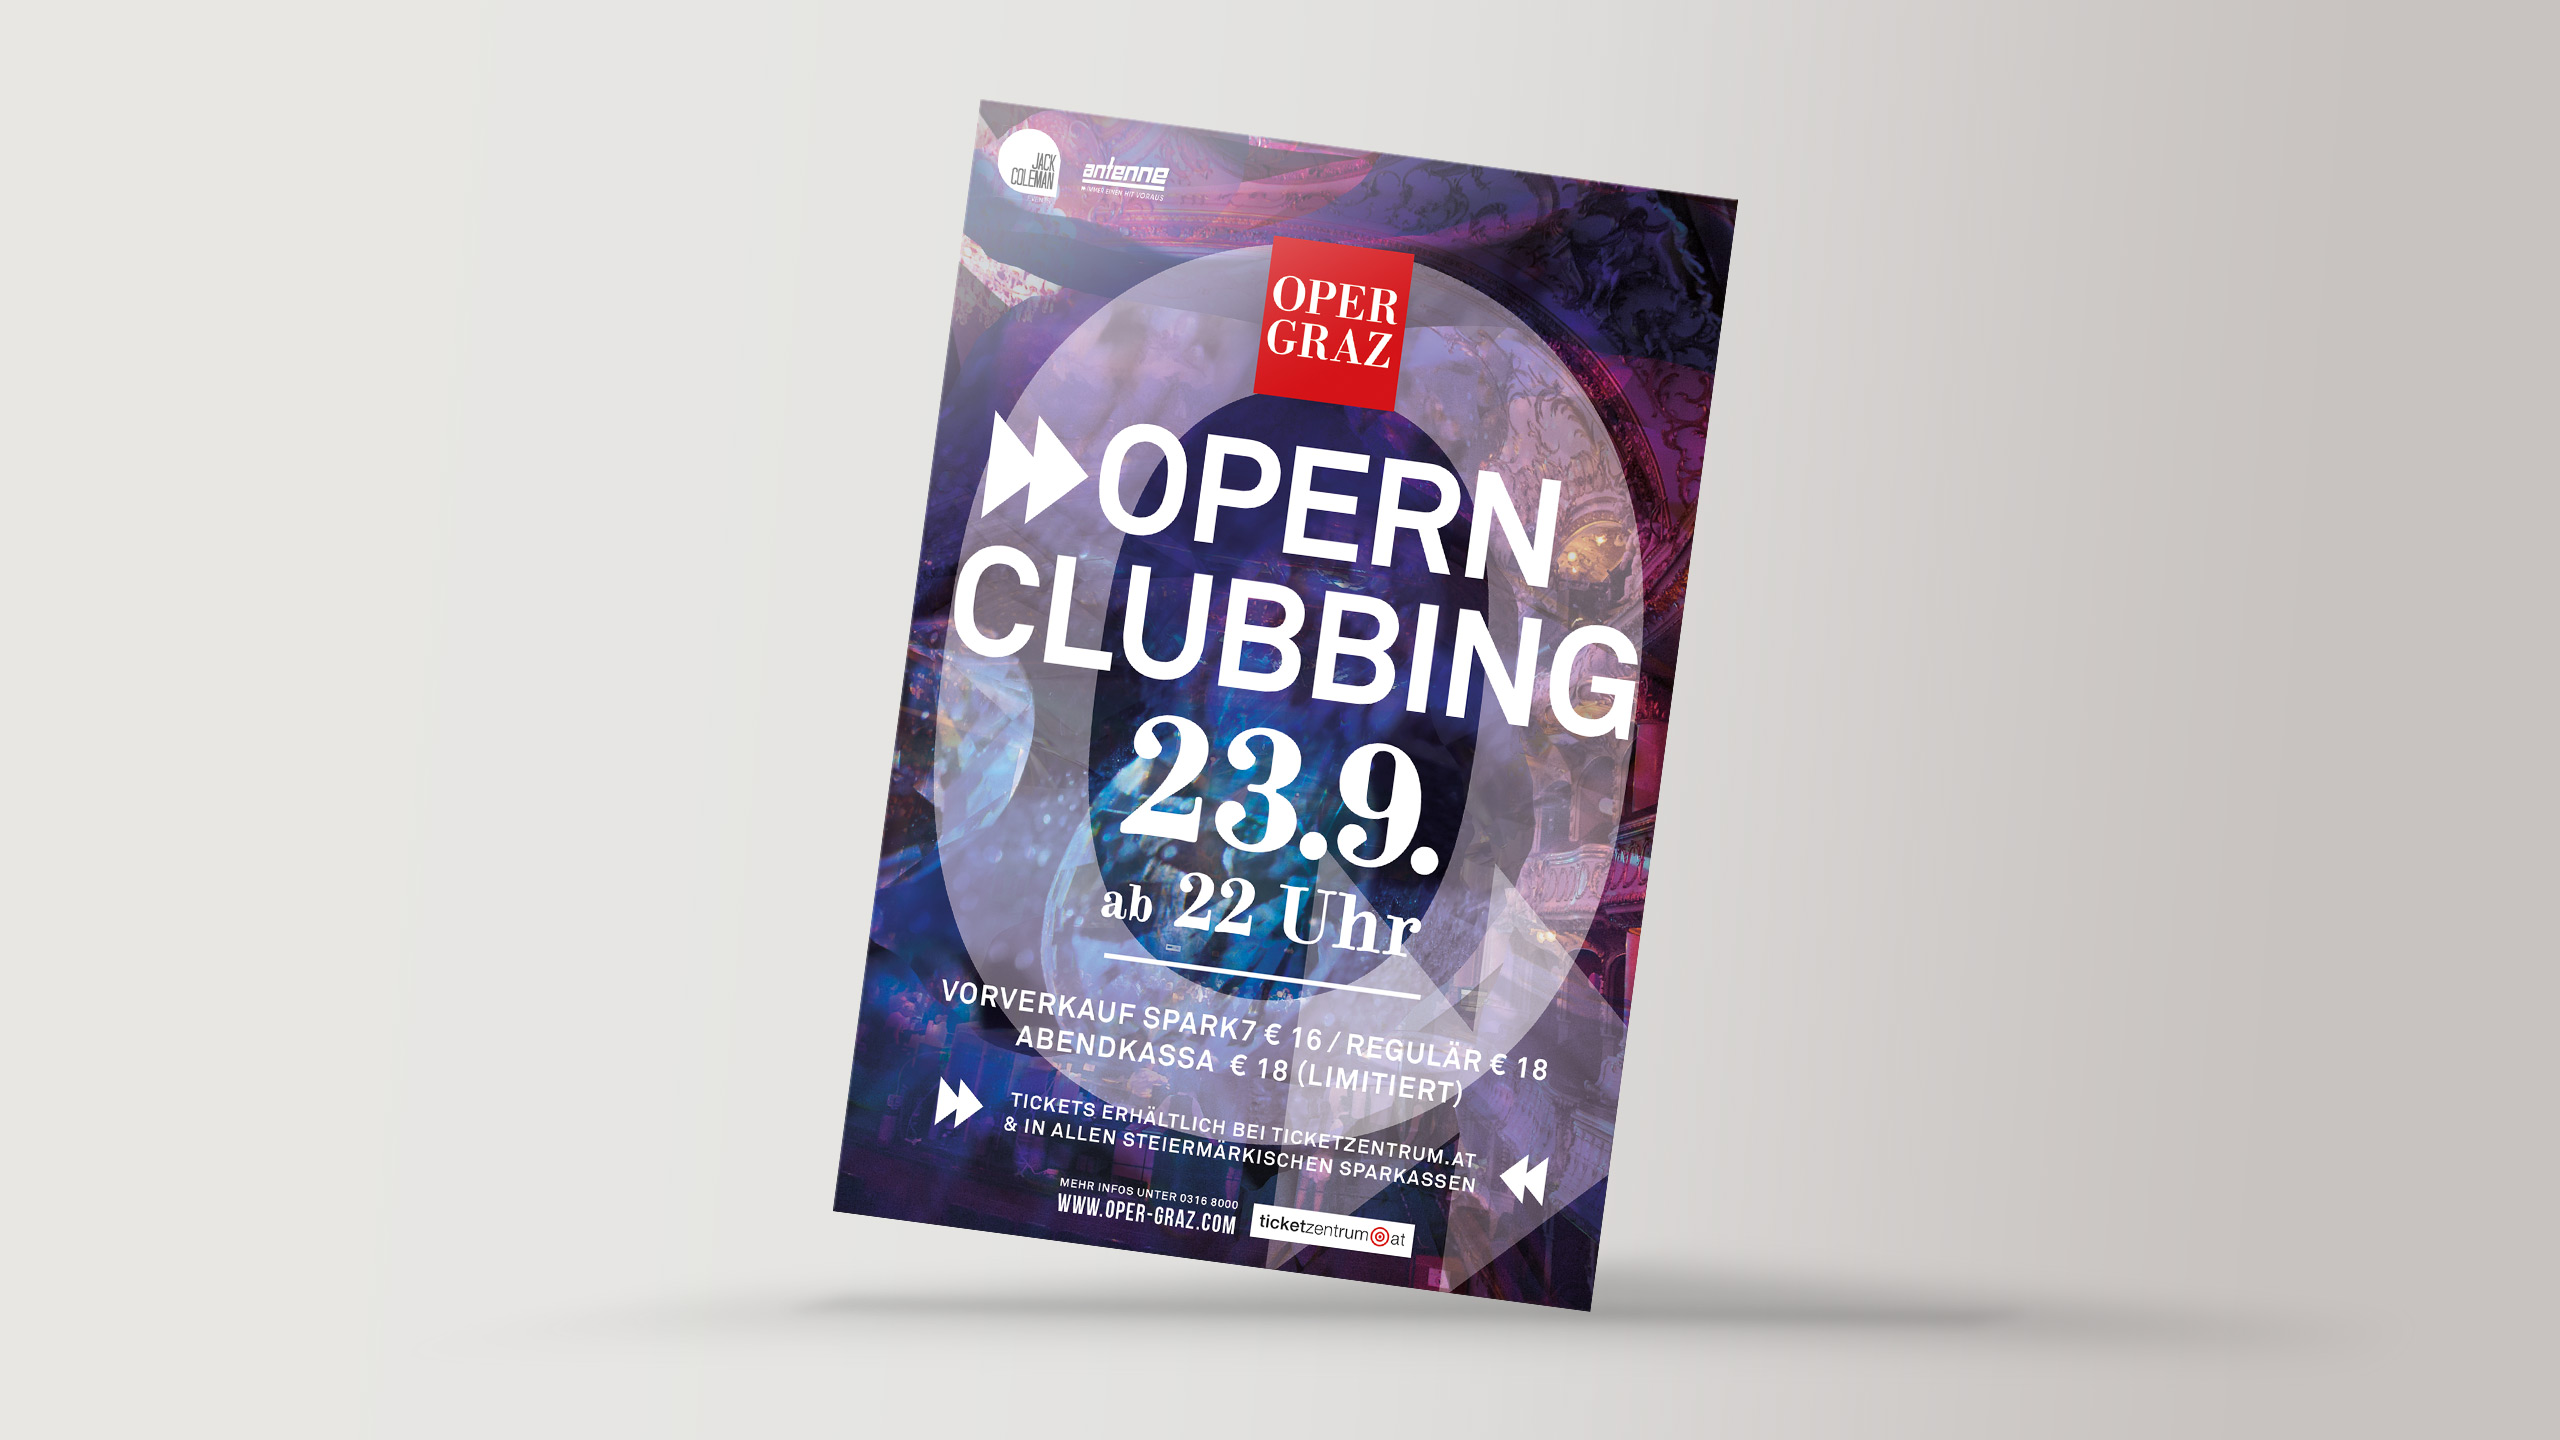 Opernclubbing-Event-Flyer